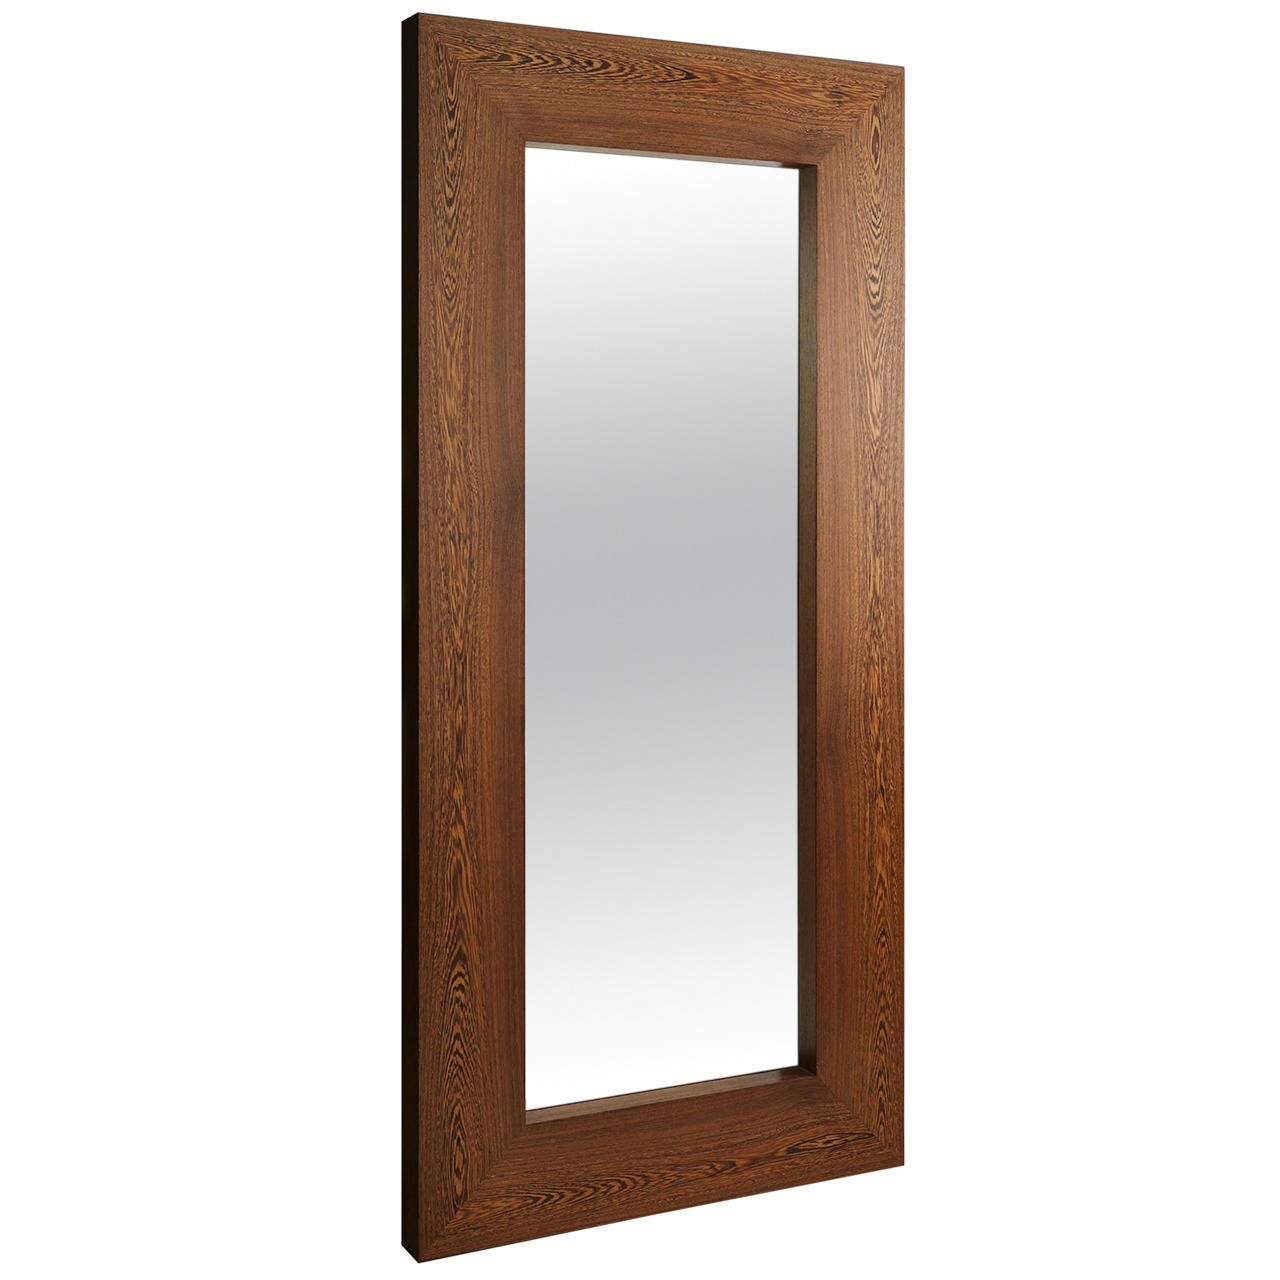 Large mirror anonymous denmark 1980s for sale at 1stdibs for Large mirror